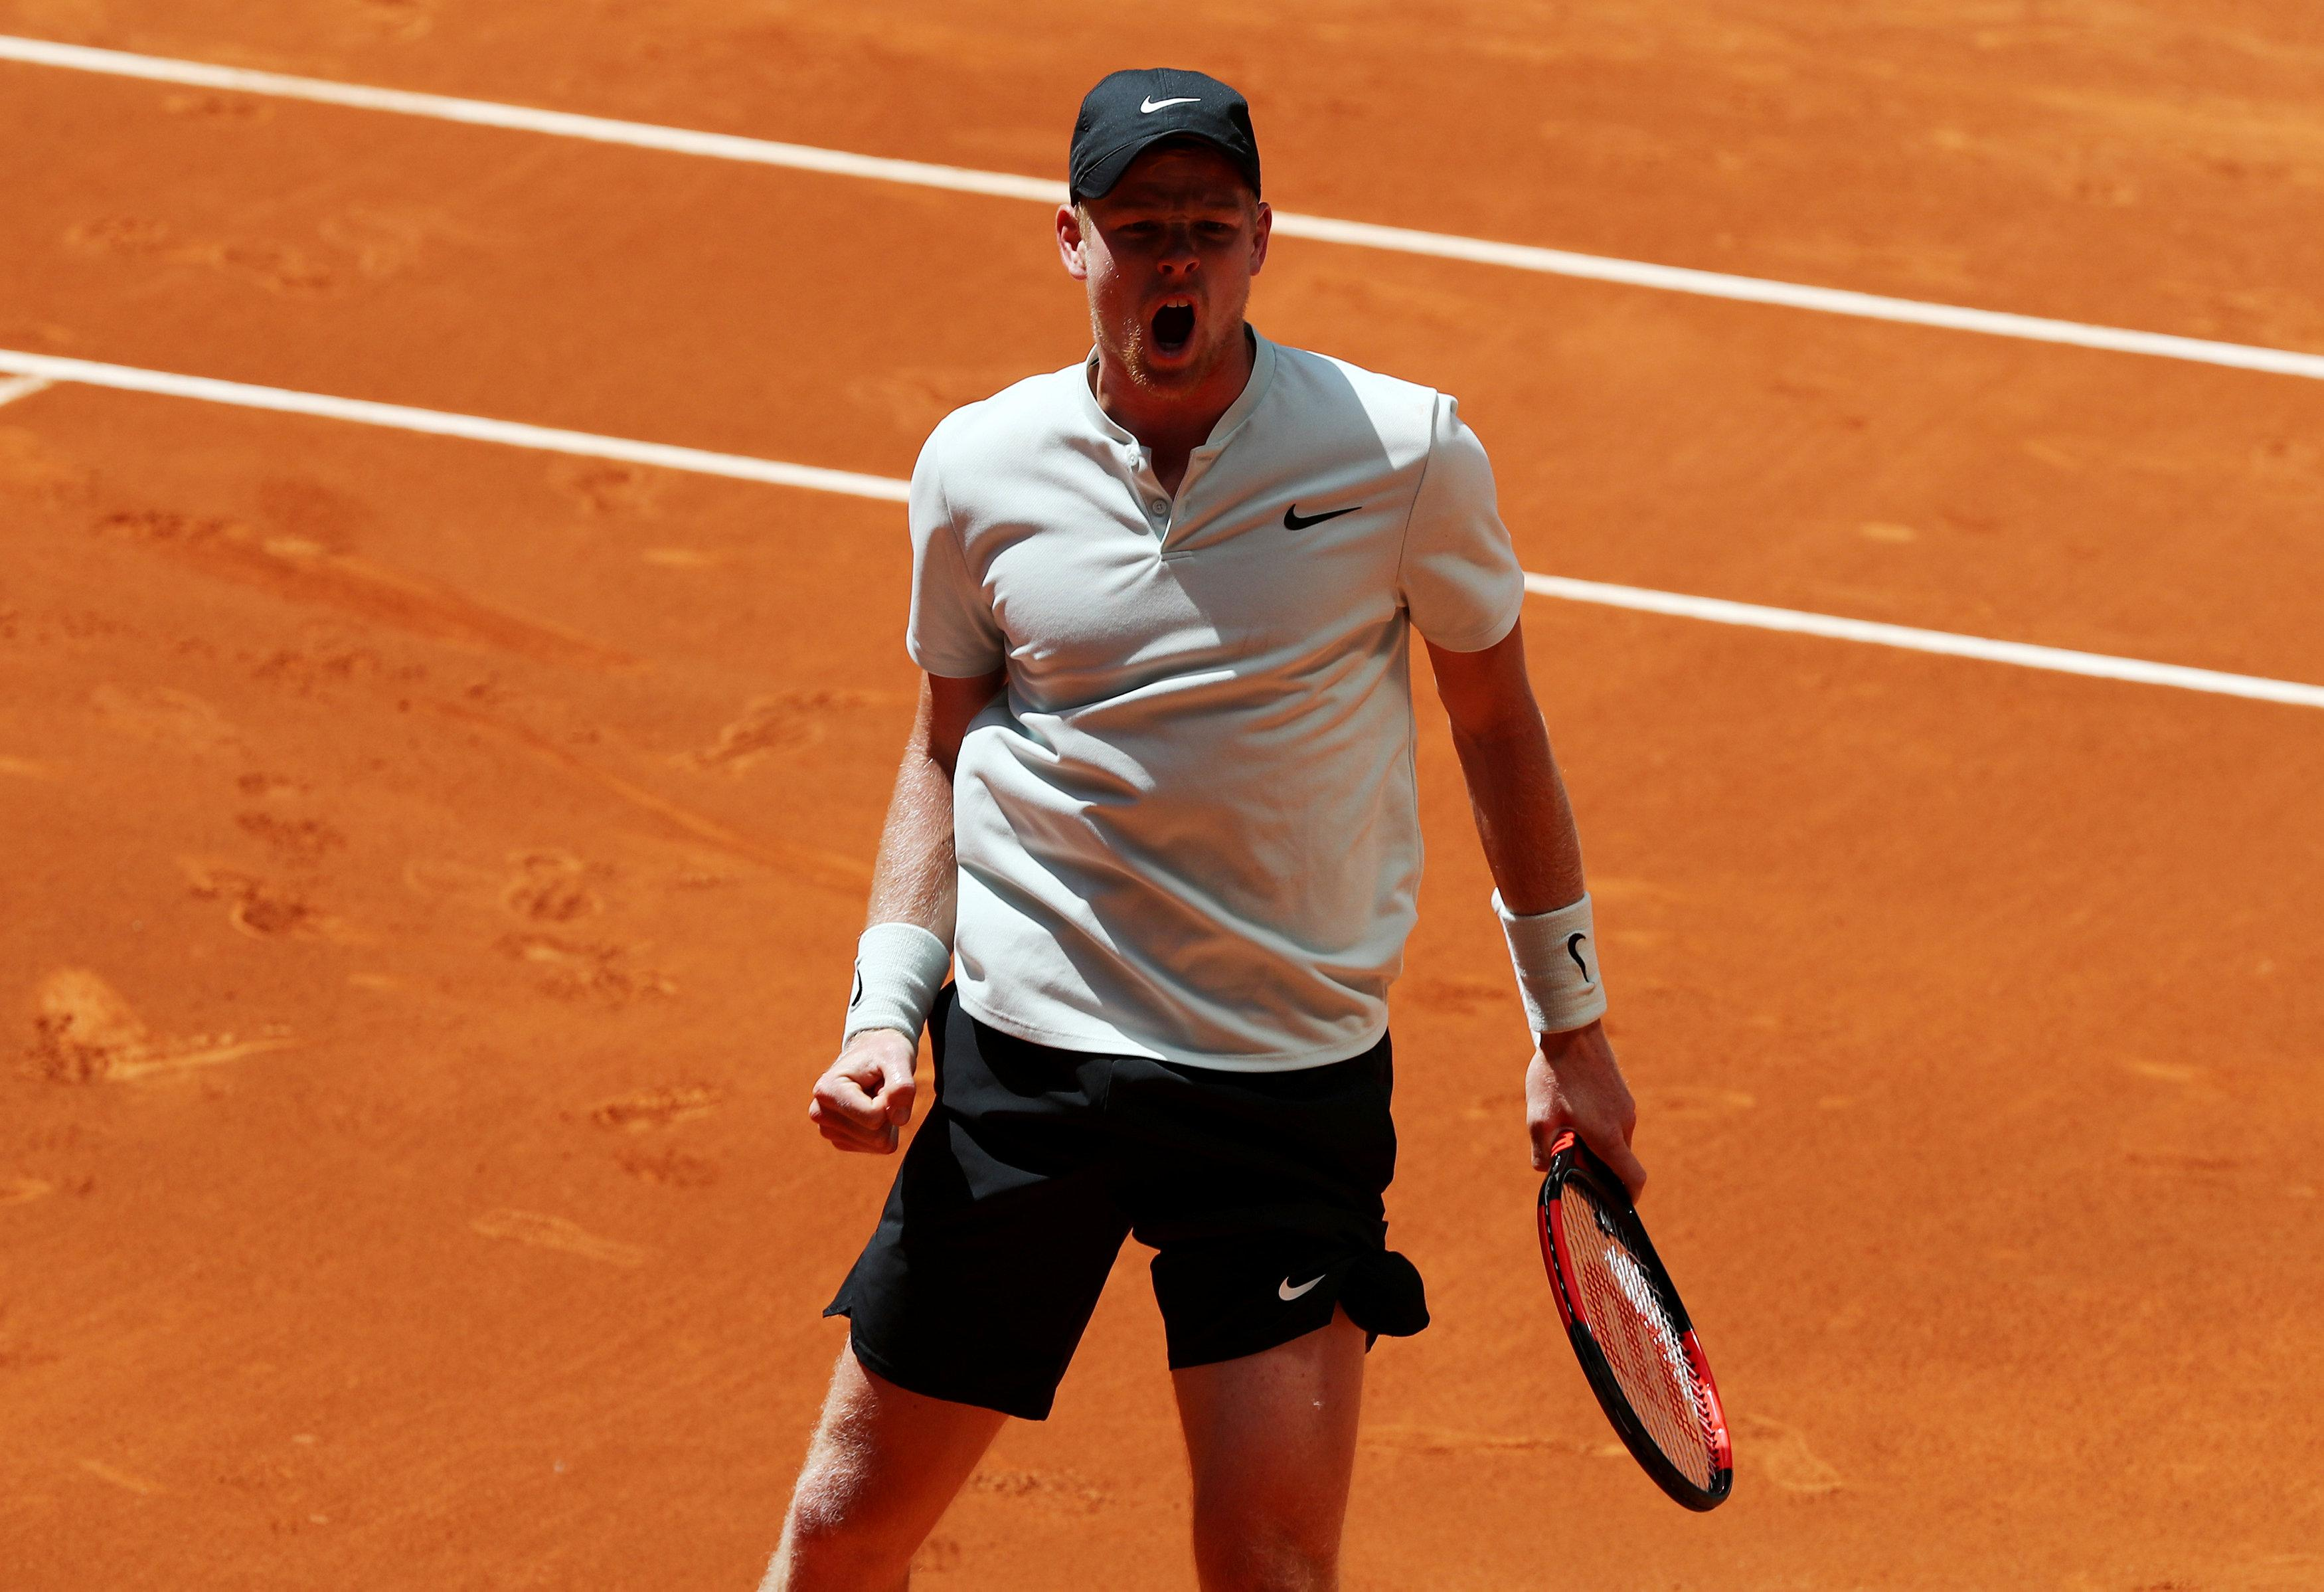 Edmund is now in the quarter-finals of a Master Series event for the first time after seeing of Goffin